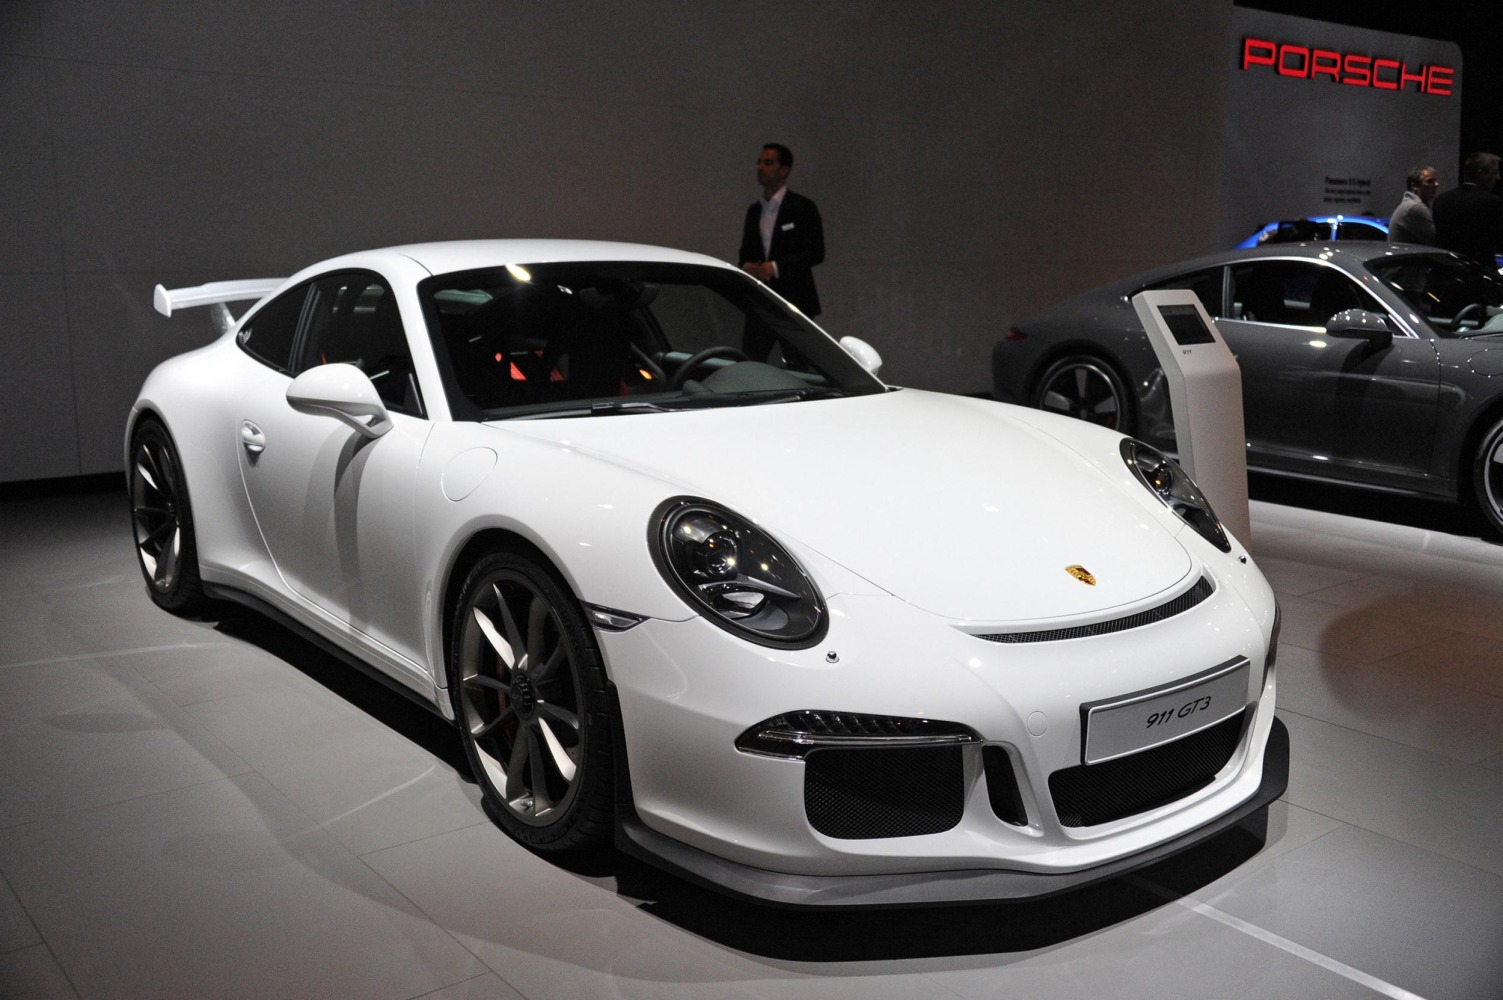 Porsche To Replace Engines In All 2014 911 Gt3 Sports Cars